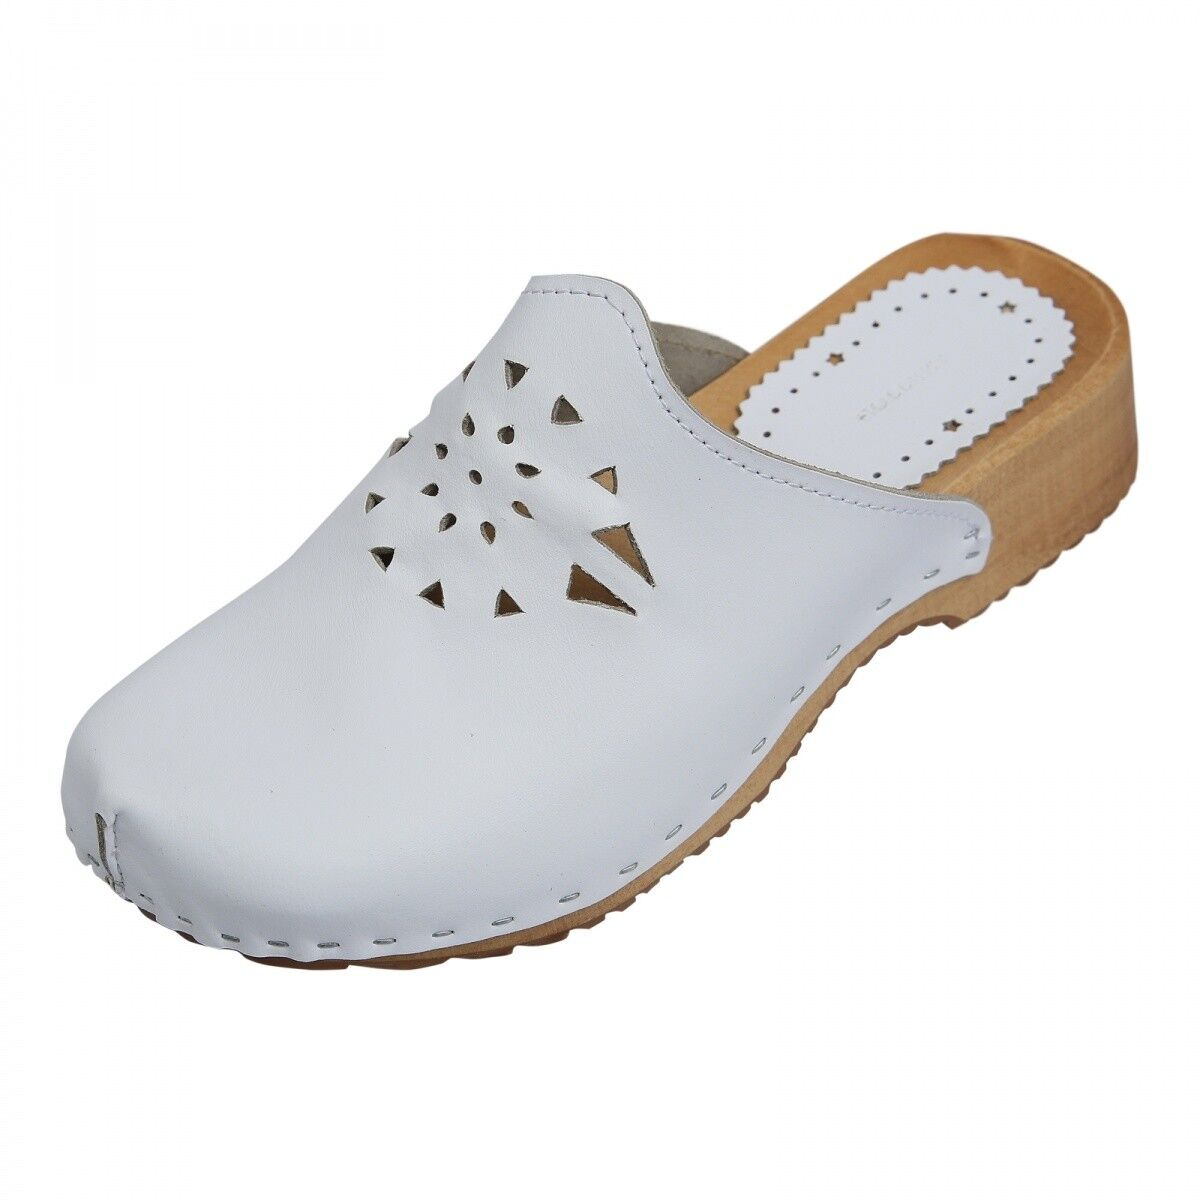 Wooden shoes - Karla Ladies Clogs Real Leather Mules White